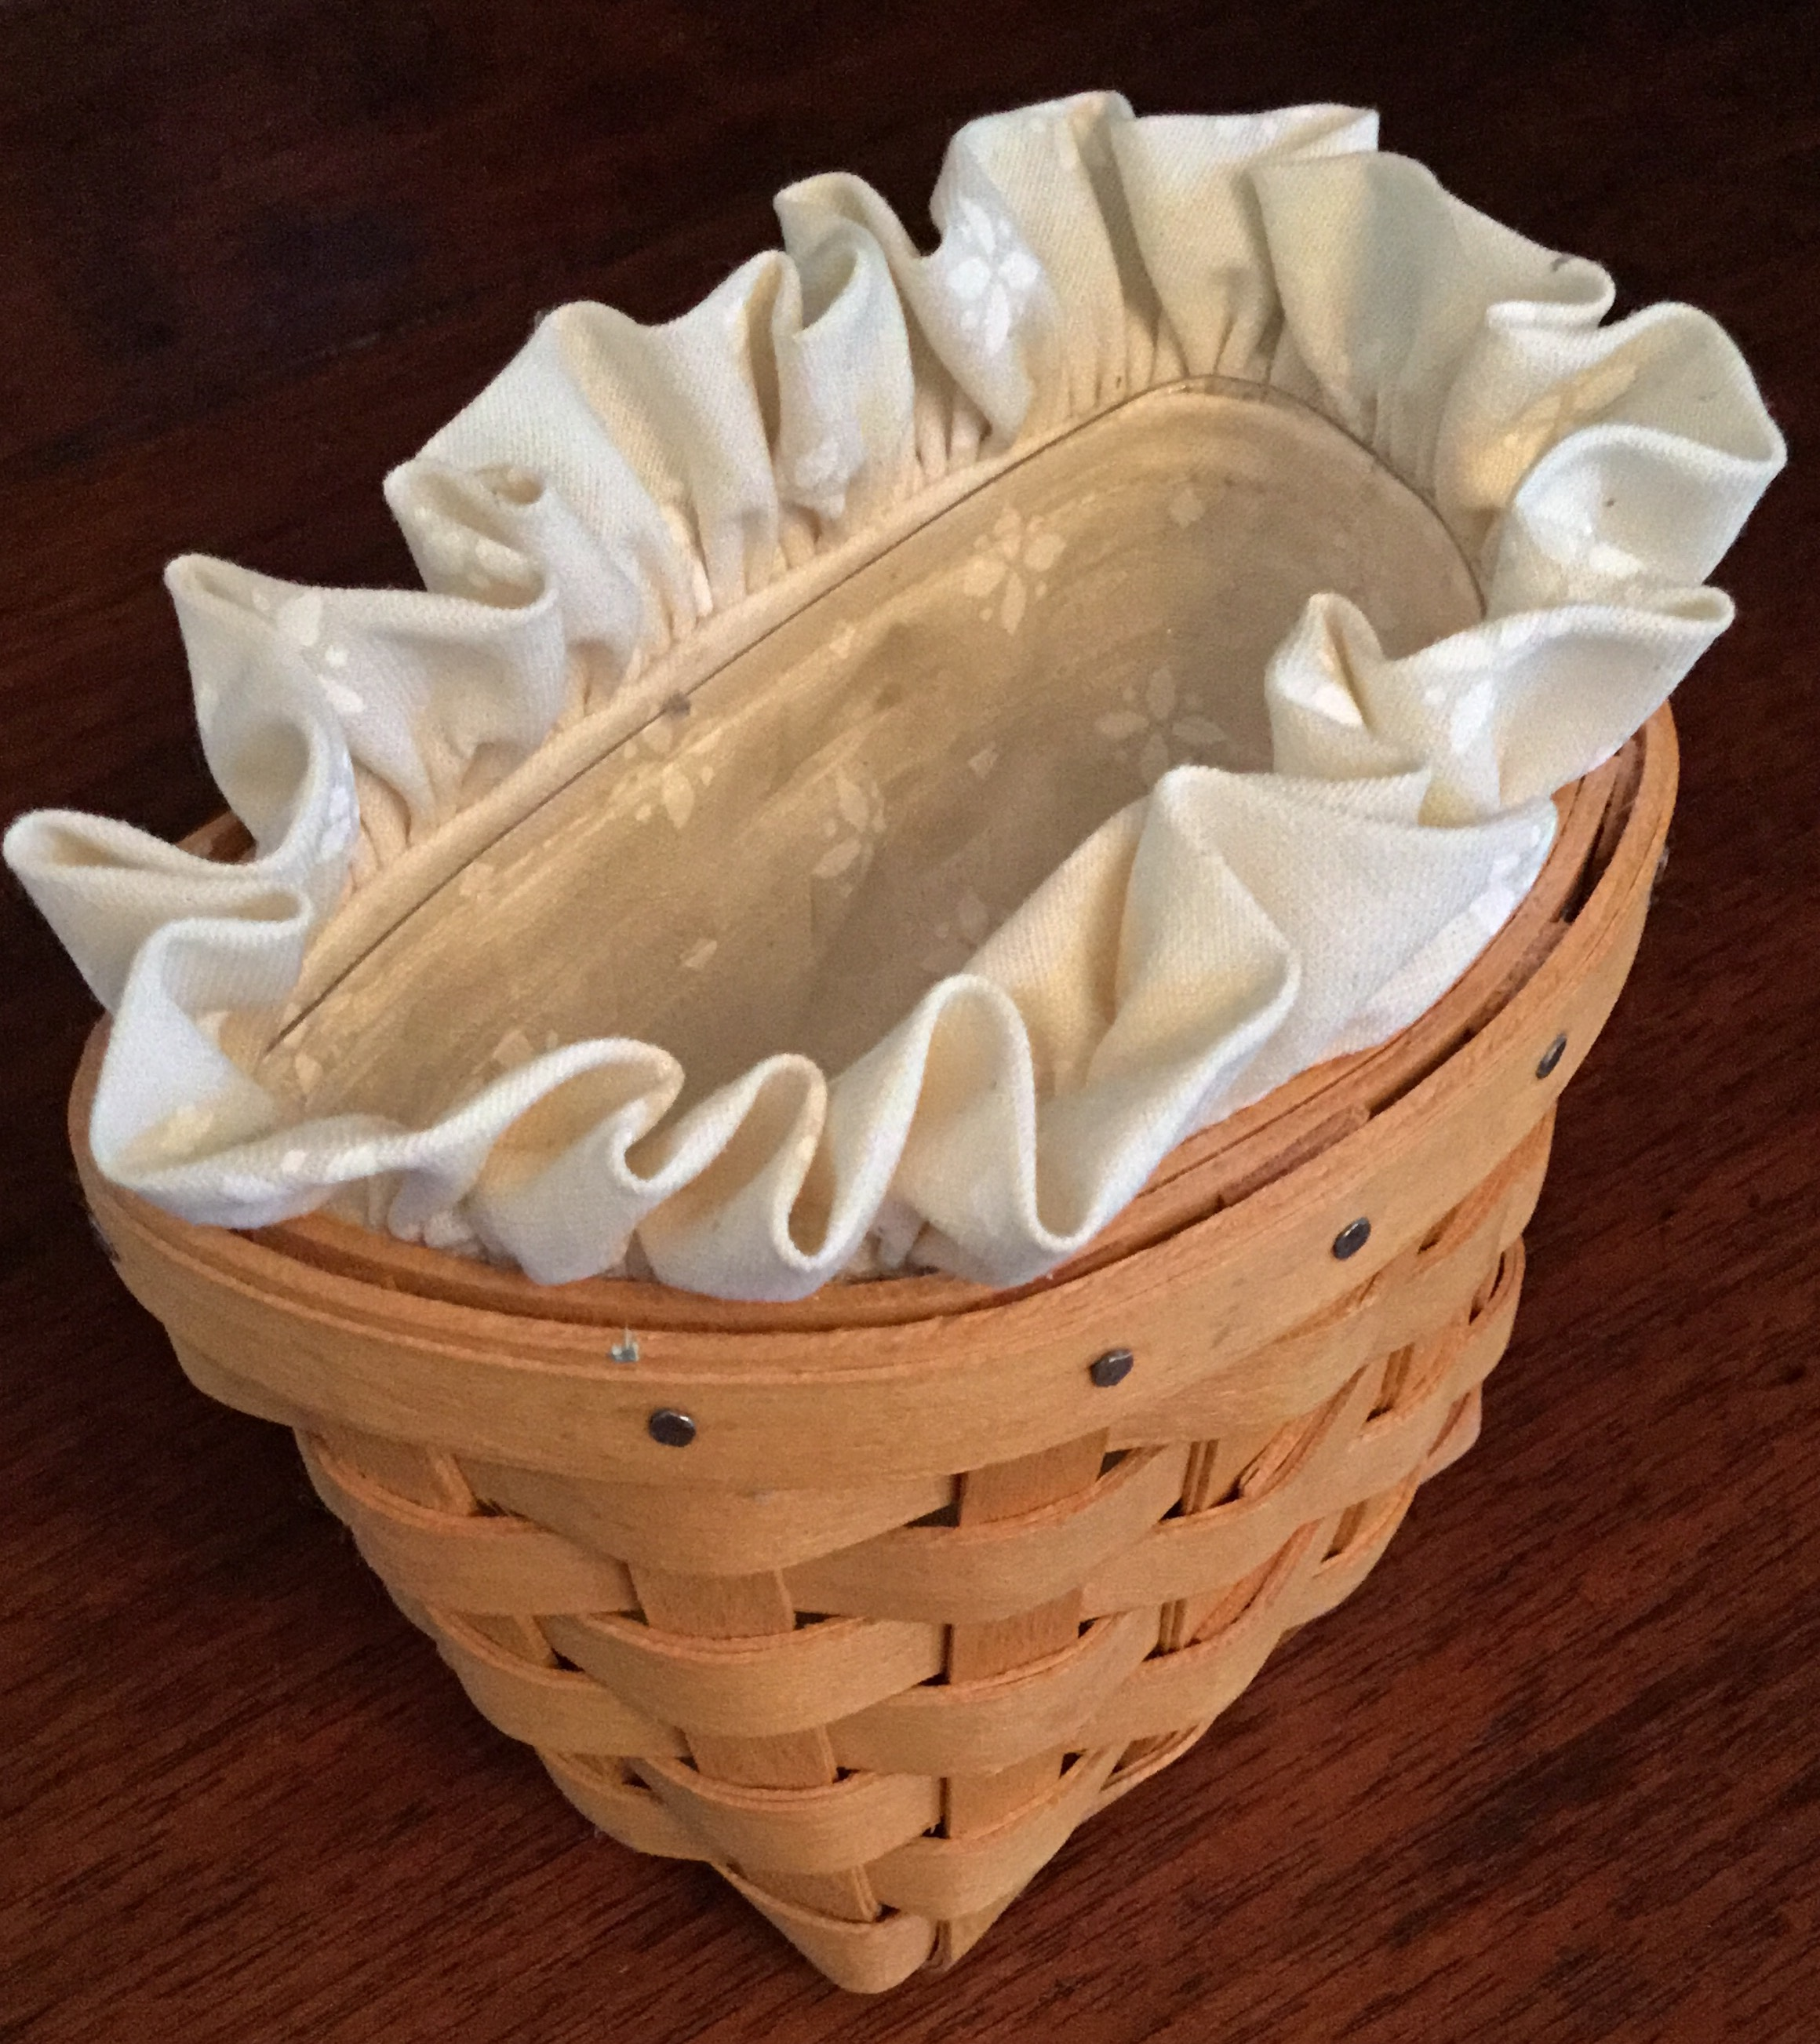 1998 Longaberger Small Wall Basket with Fabric Liner and Plastic Protector